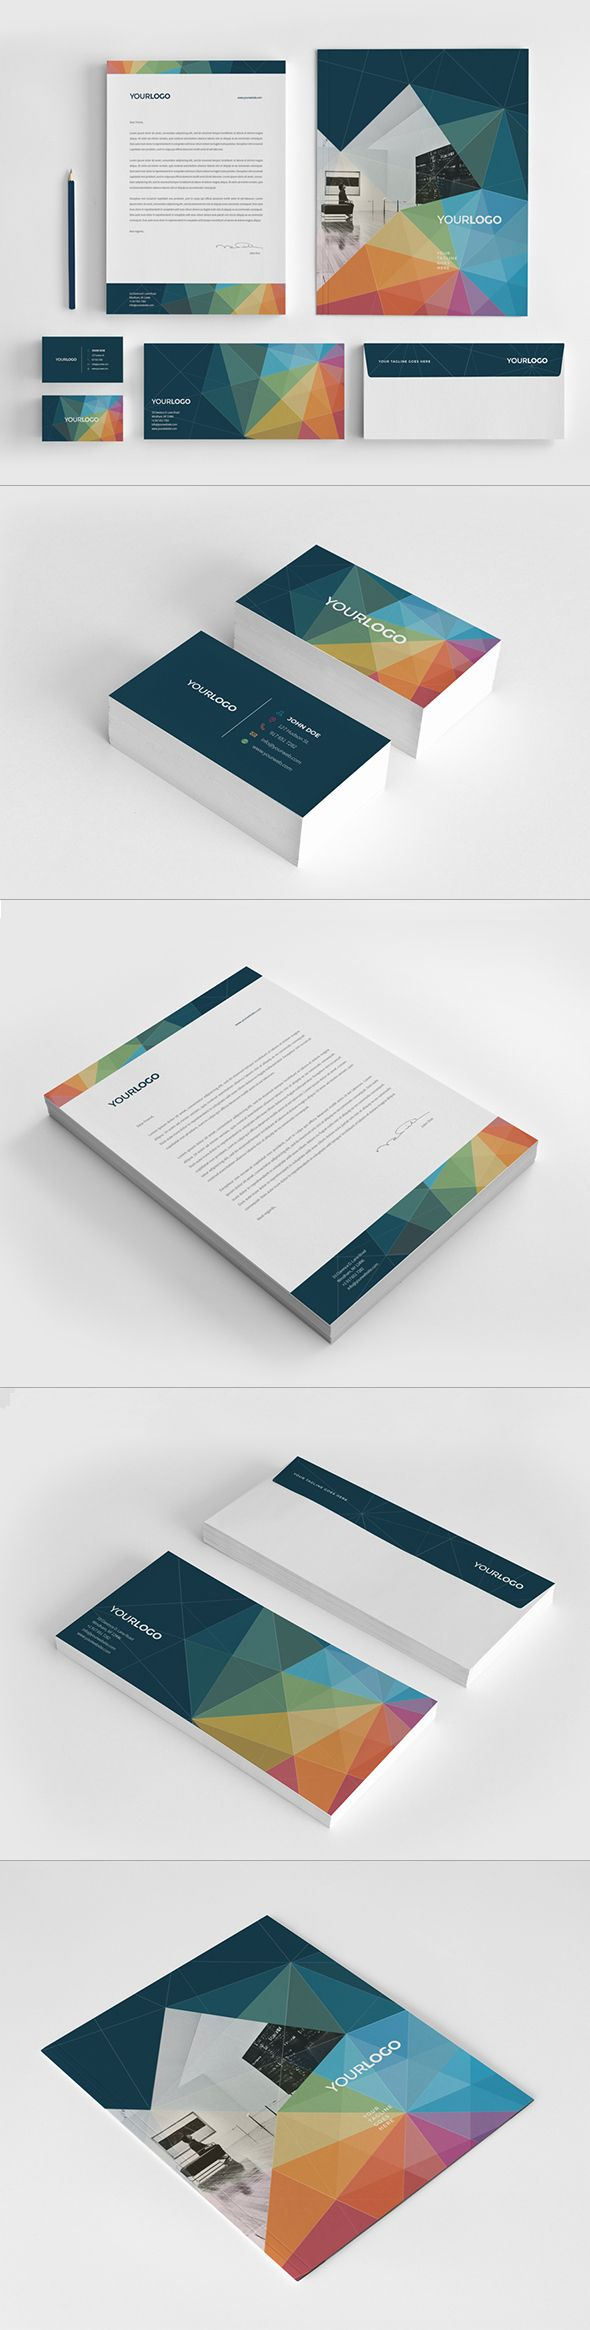 Multicolor Modern Stationery Pack on Behance: